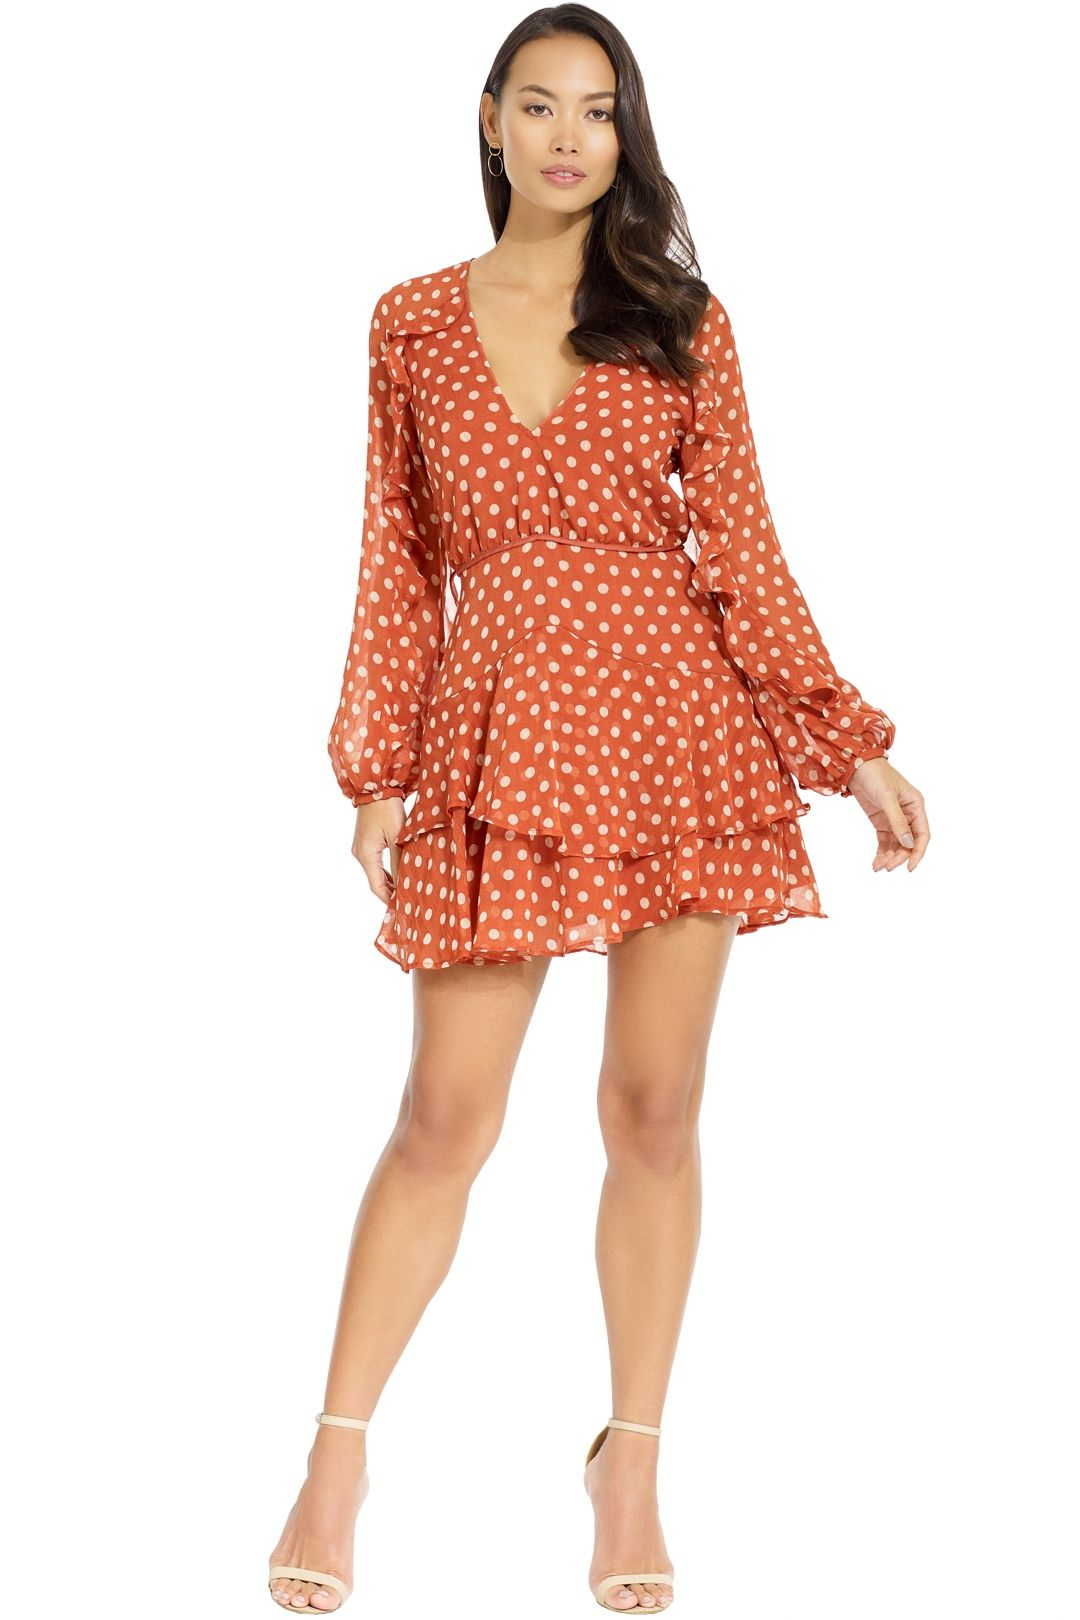 Talulah - Love Token Mini Dress - Salmon - Front